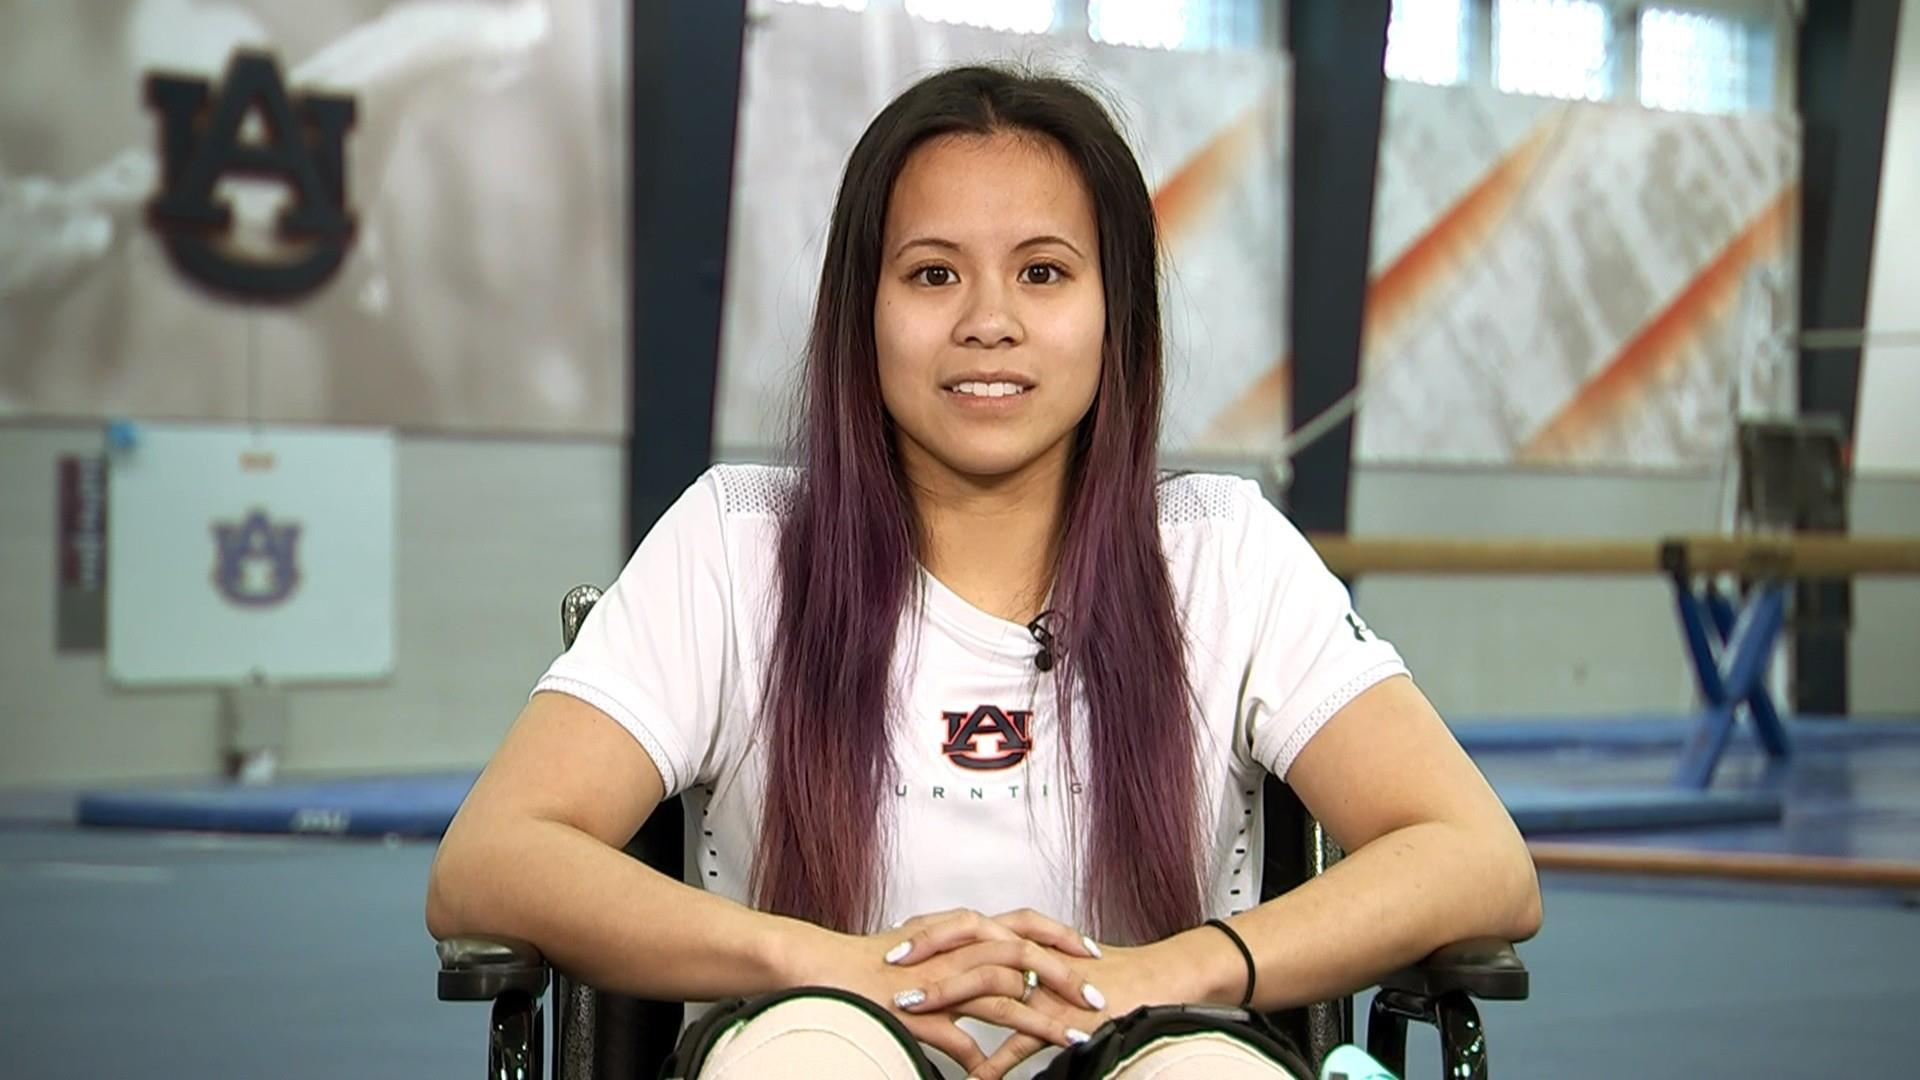 915cc49e4 Auburn gymnast Samantha Cerio opens up about moment of career-ending  injury.